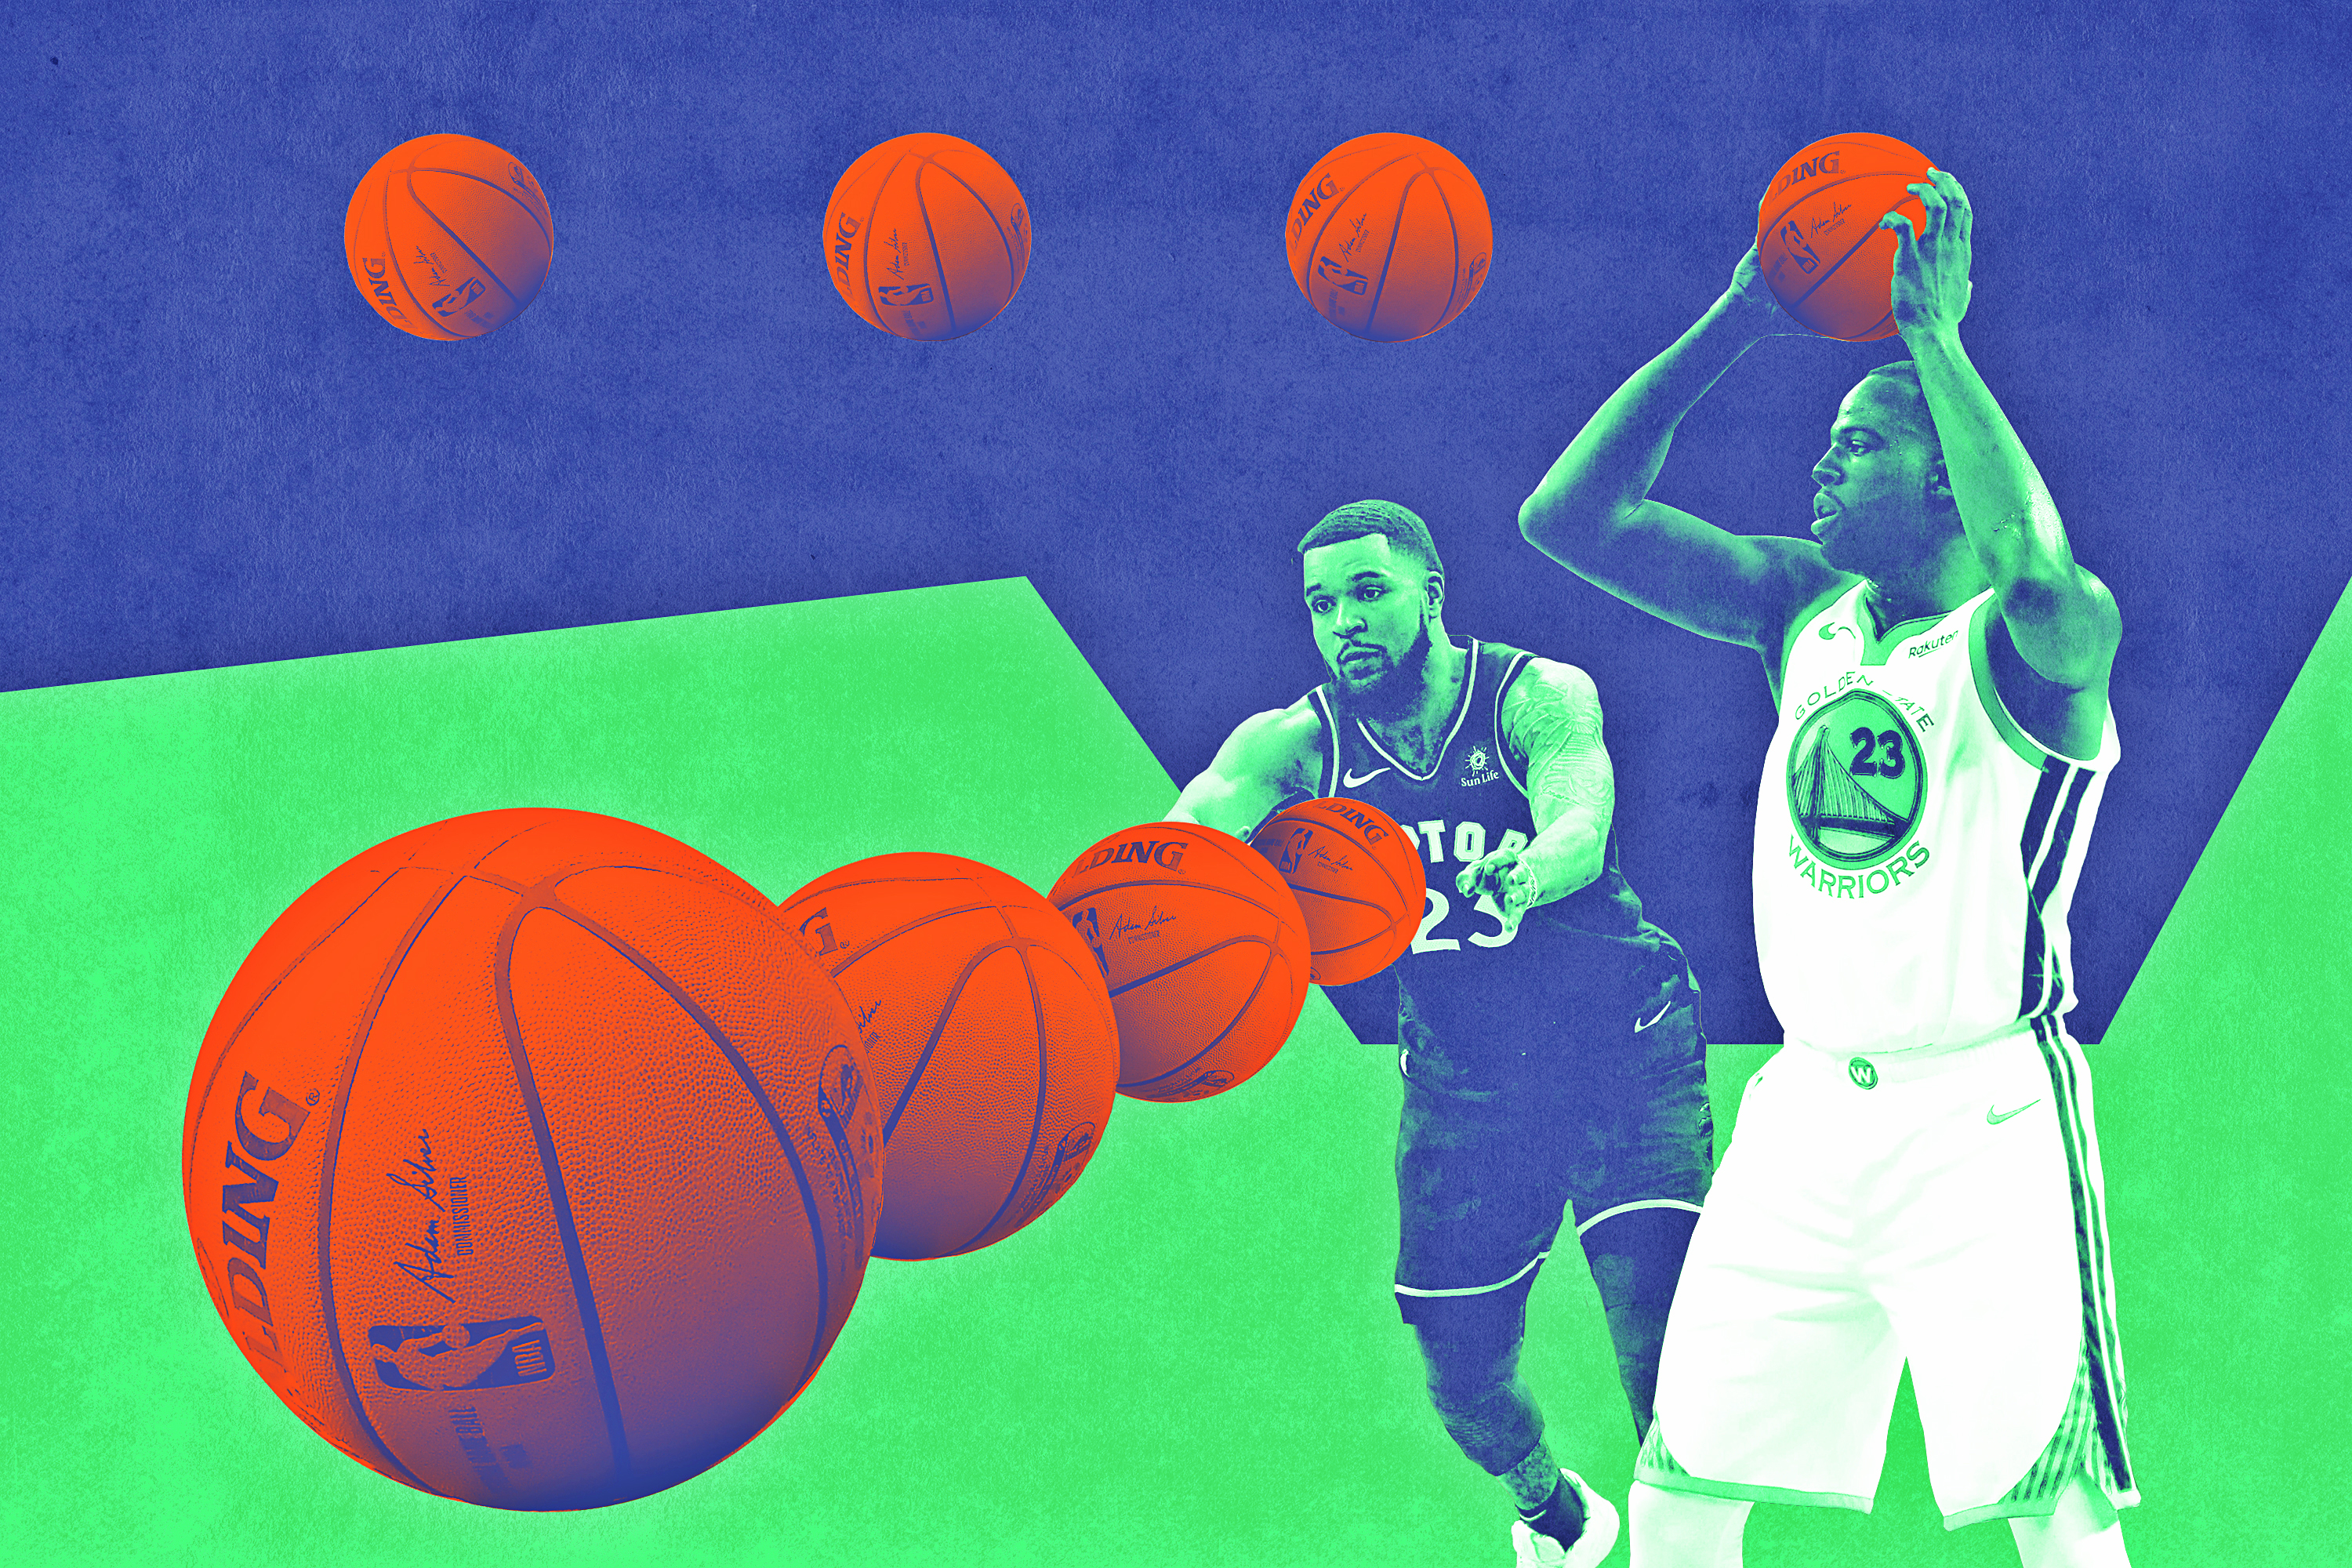 Are There Any Draymonds or VanVleets in This Year's NBA